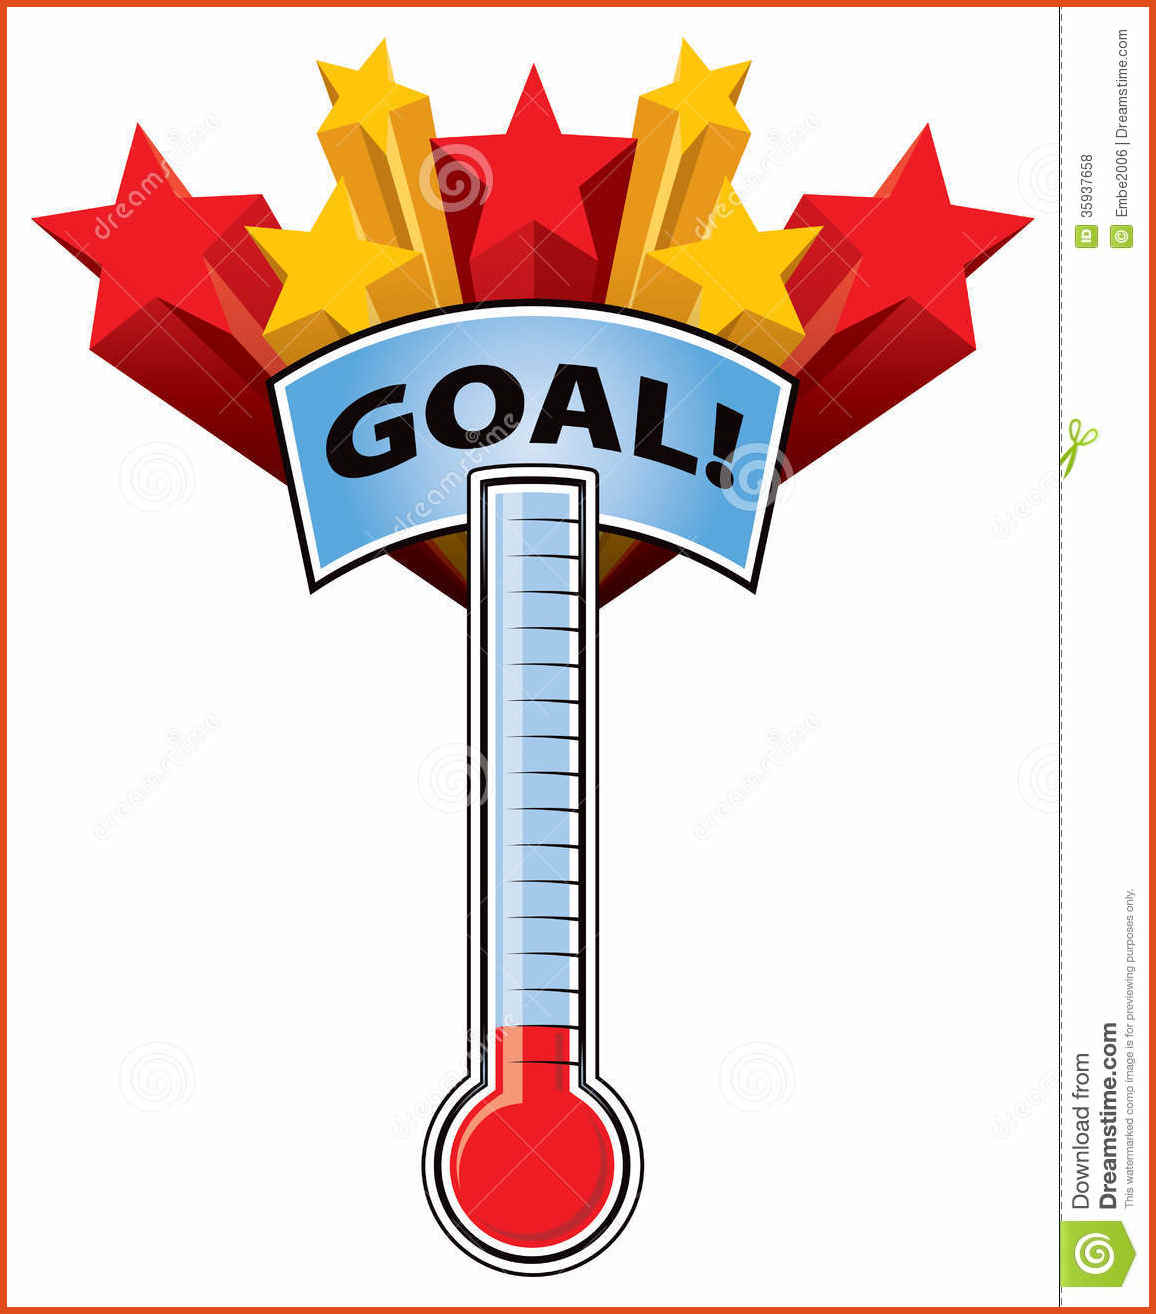 1156x1314 Goal Thermometer Template Moa Format